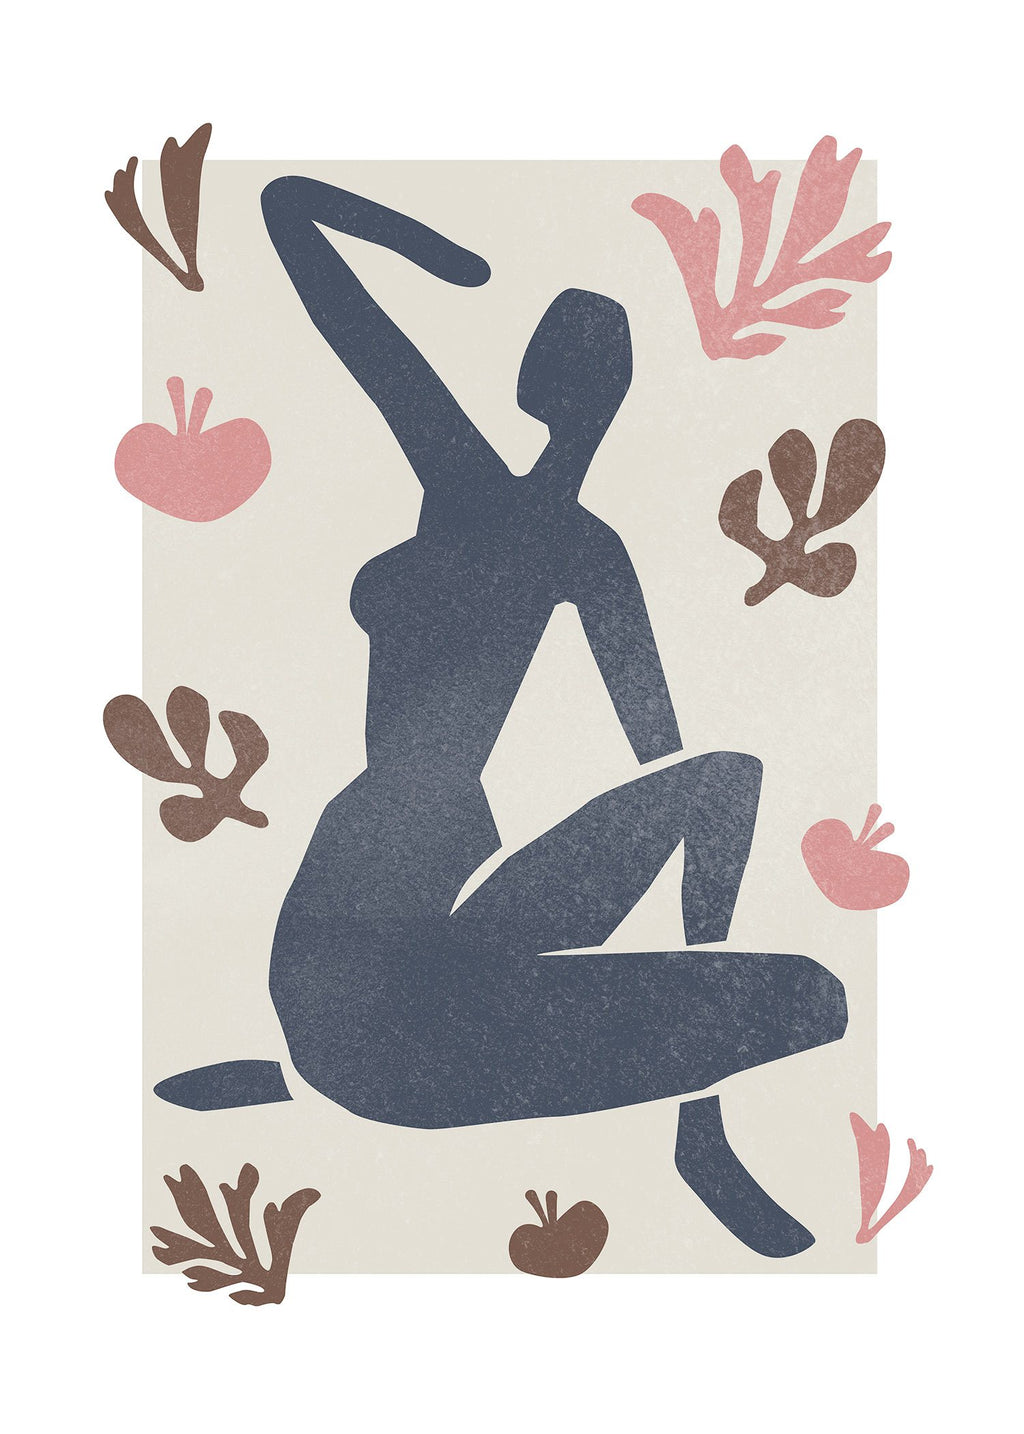 Sitting Woman Watercolour Style Print